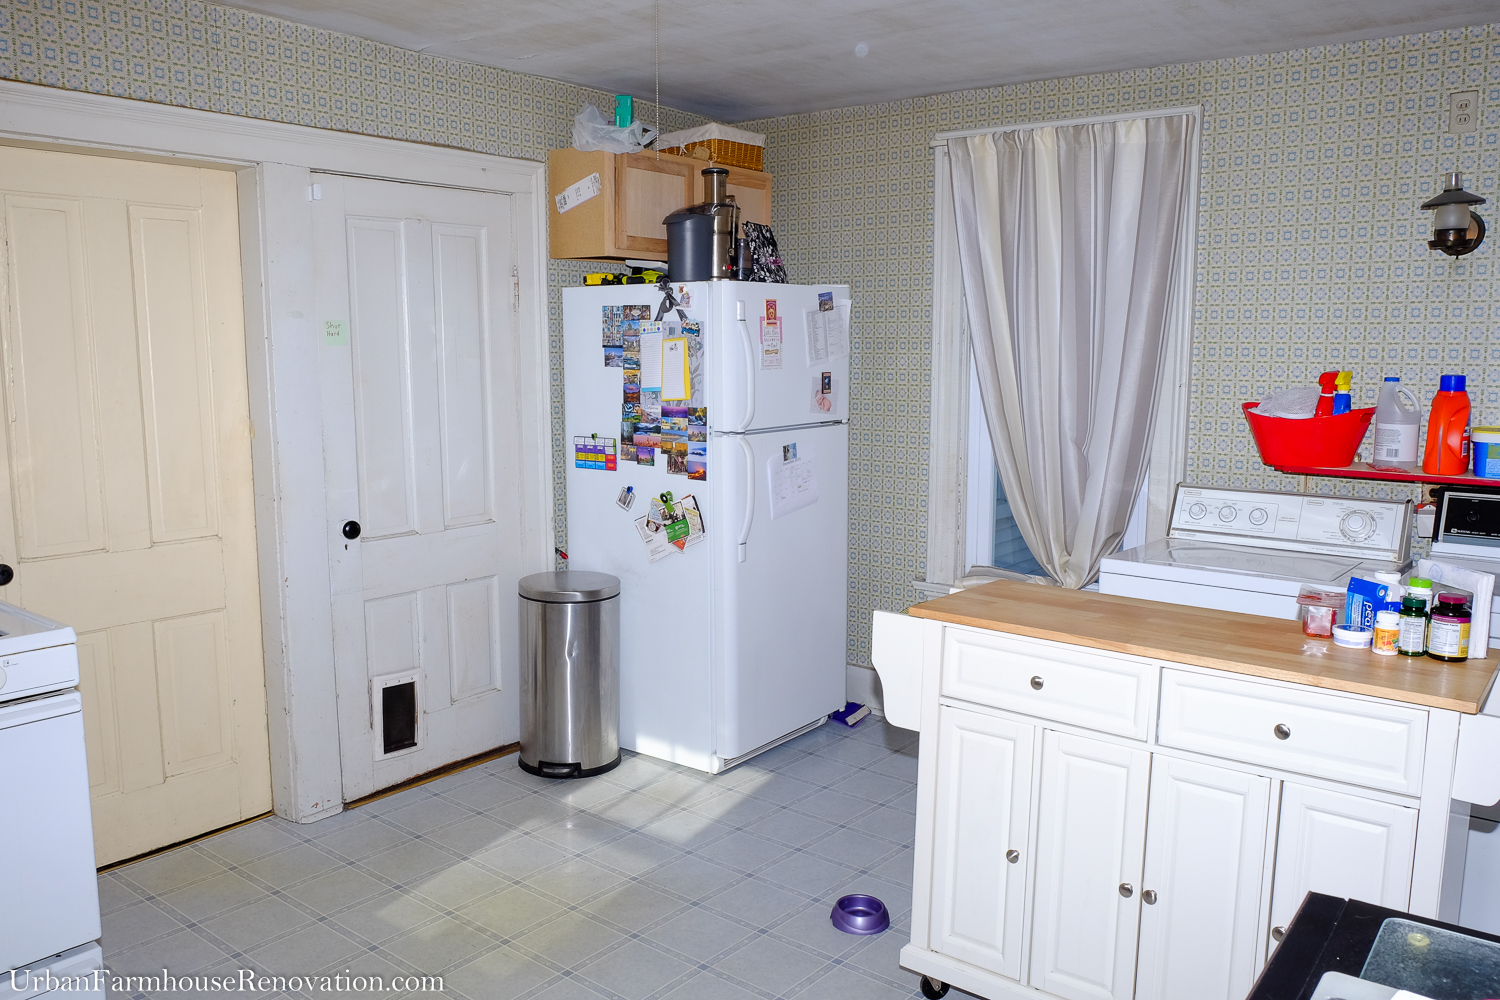 My kitchen is closed off from the main living space and has 3 doorways and 3 windows making it difficult to find usable space. It is in desperate need of a makeover! #LGLimitlessDesign #Contest